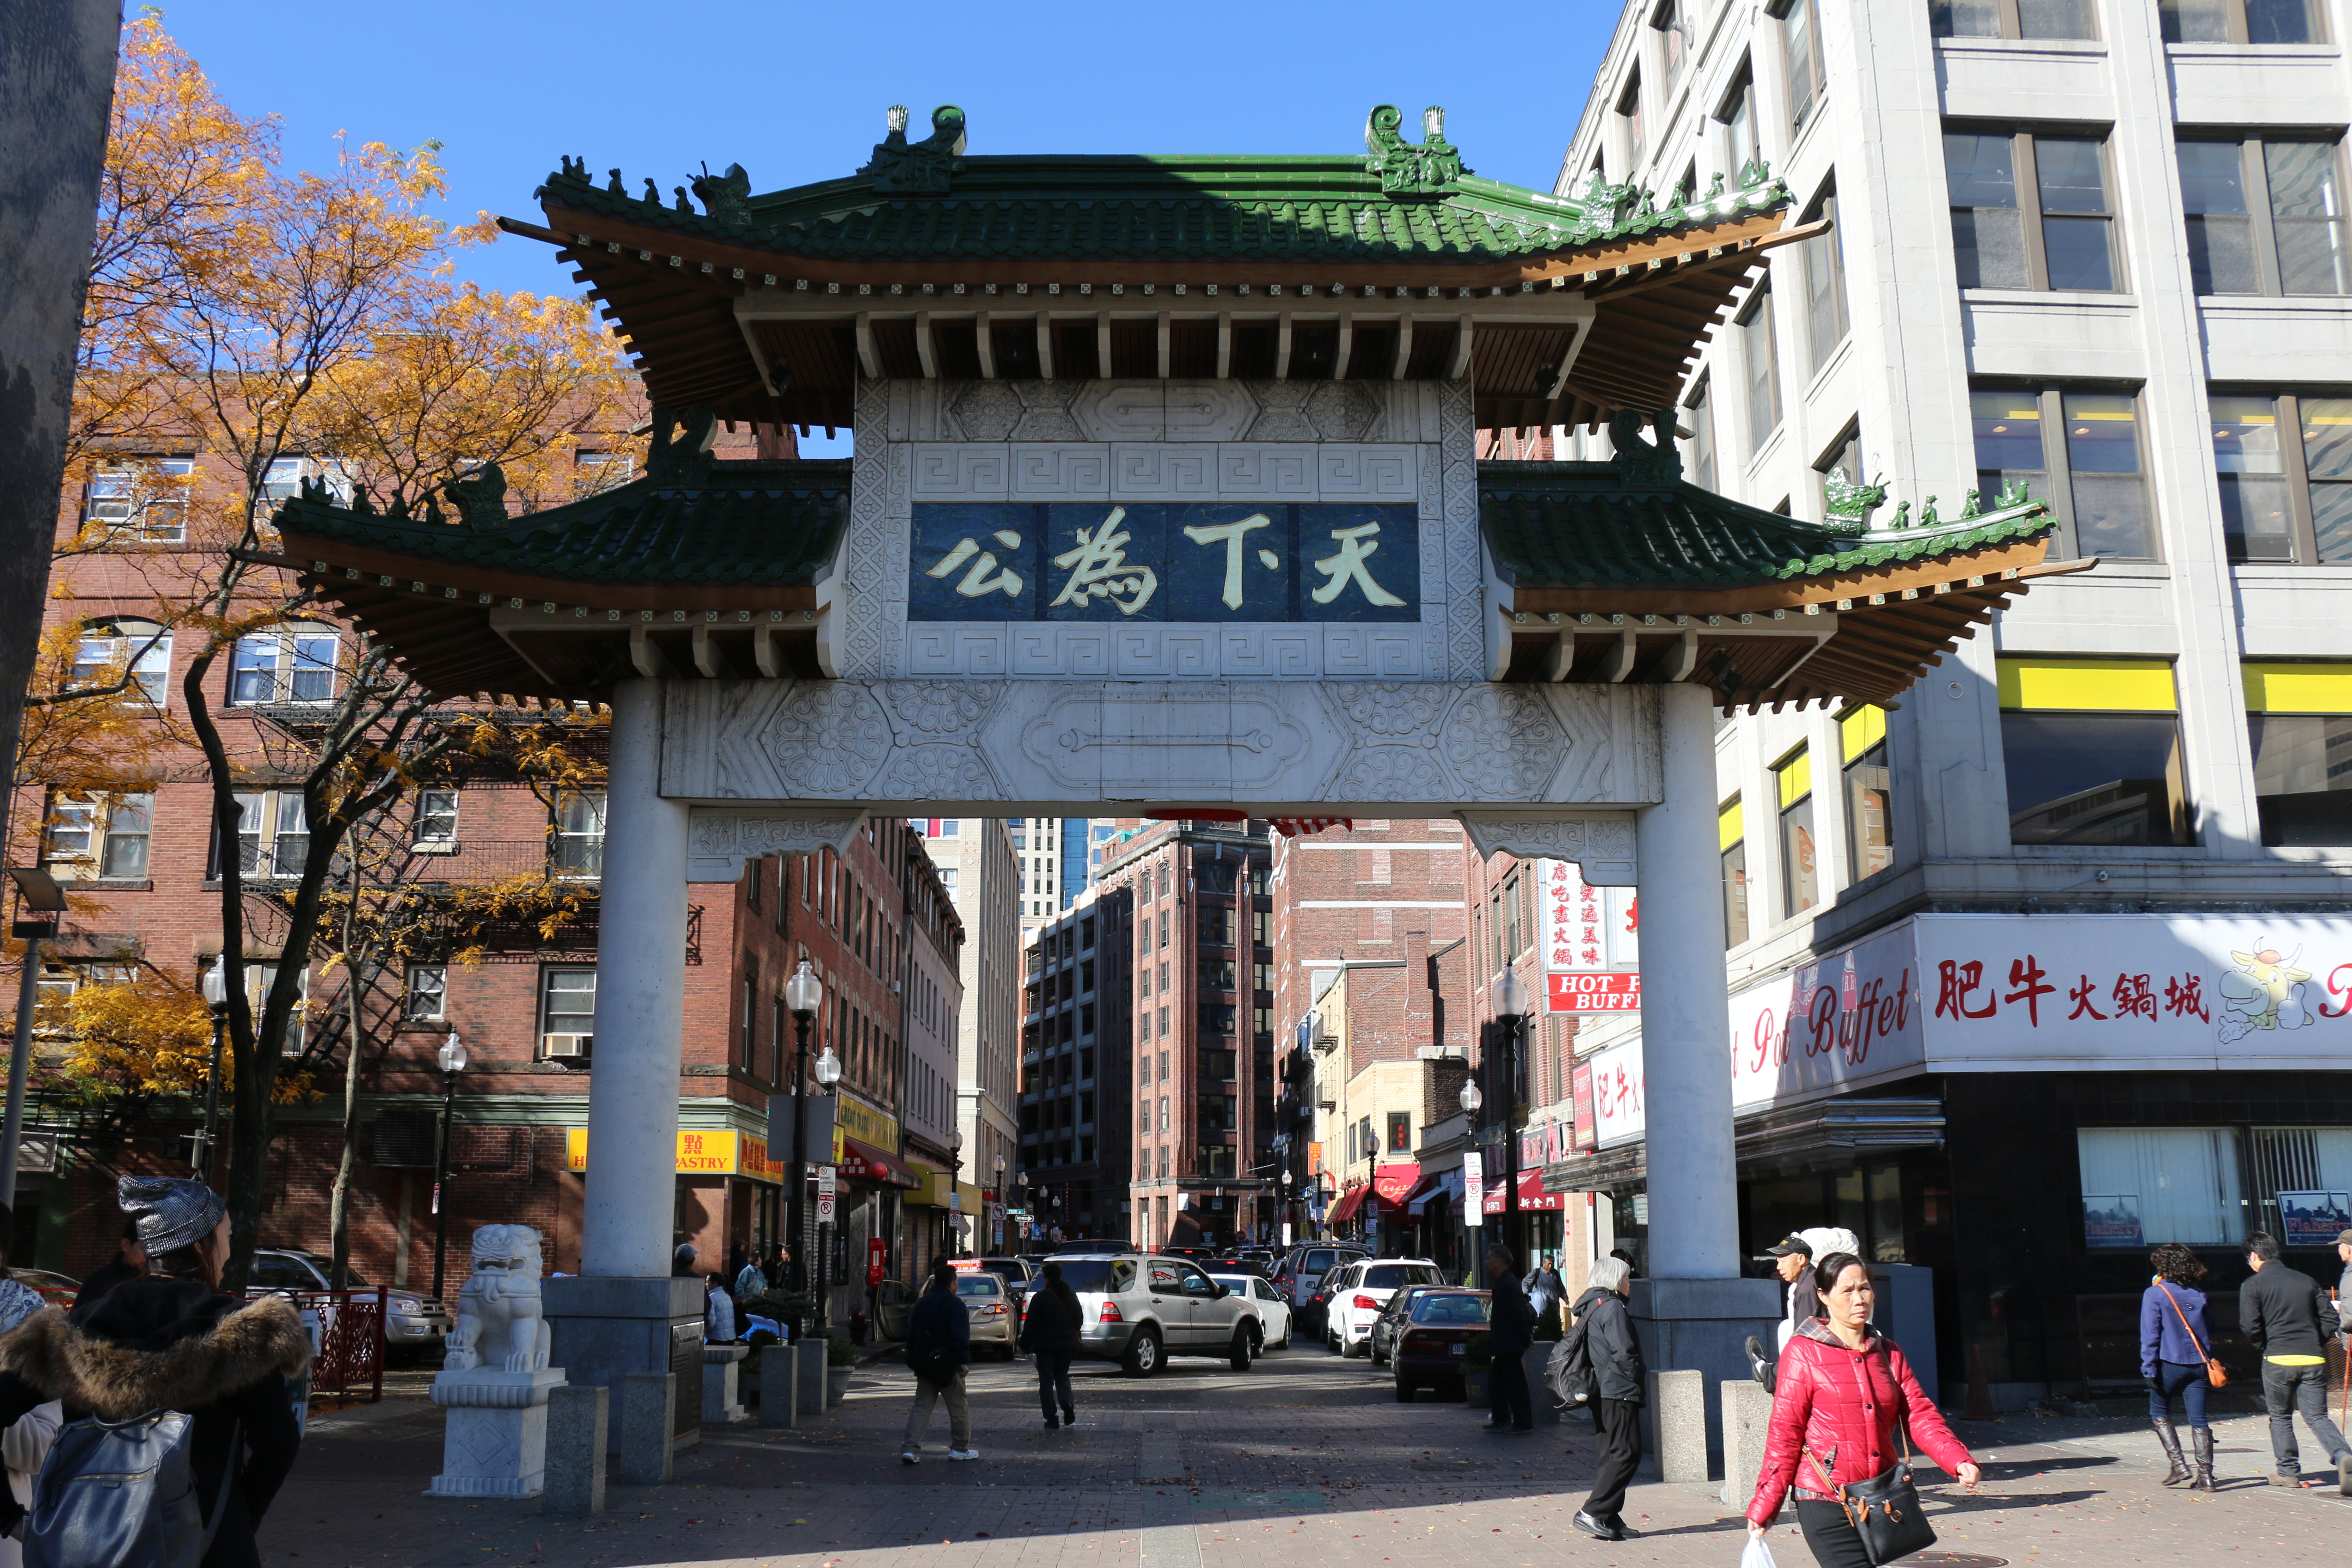 Boston S Chinatown Sees Declining Asian Population As Cost Of Living Grows